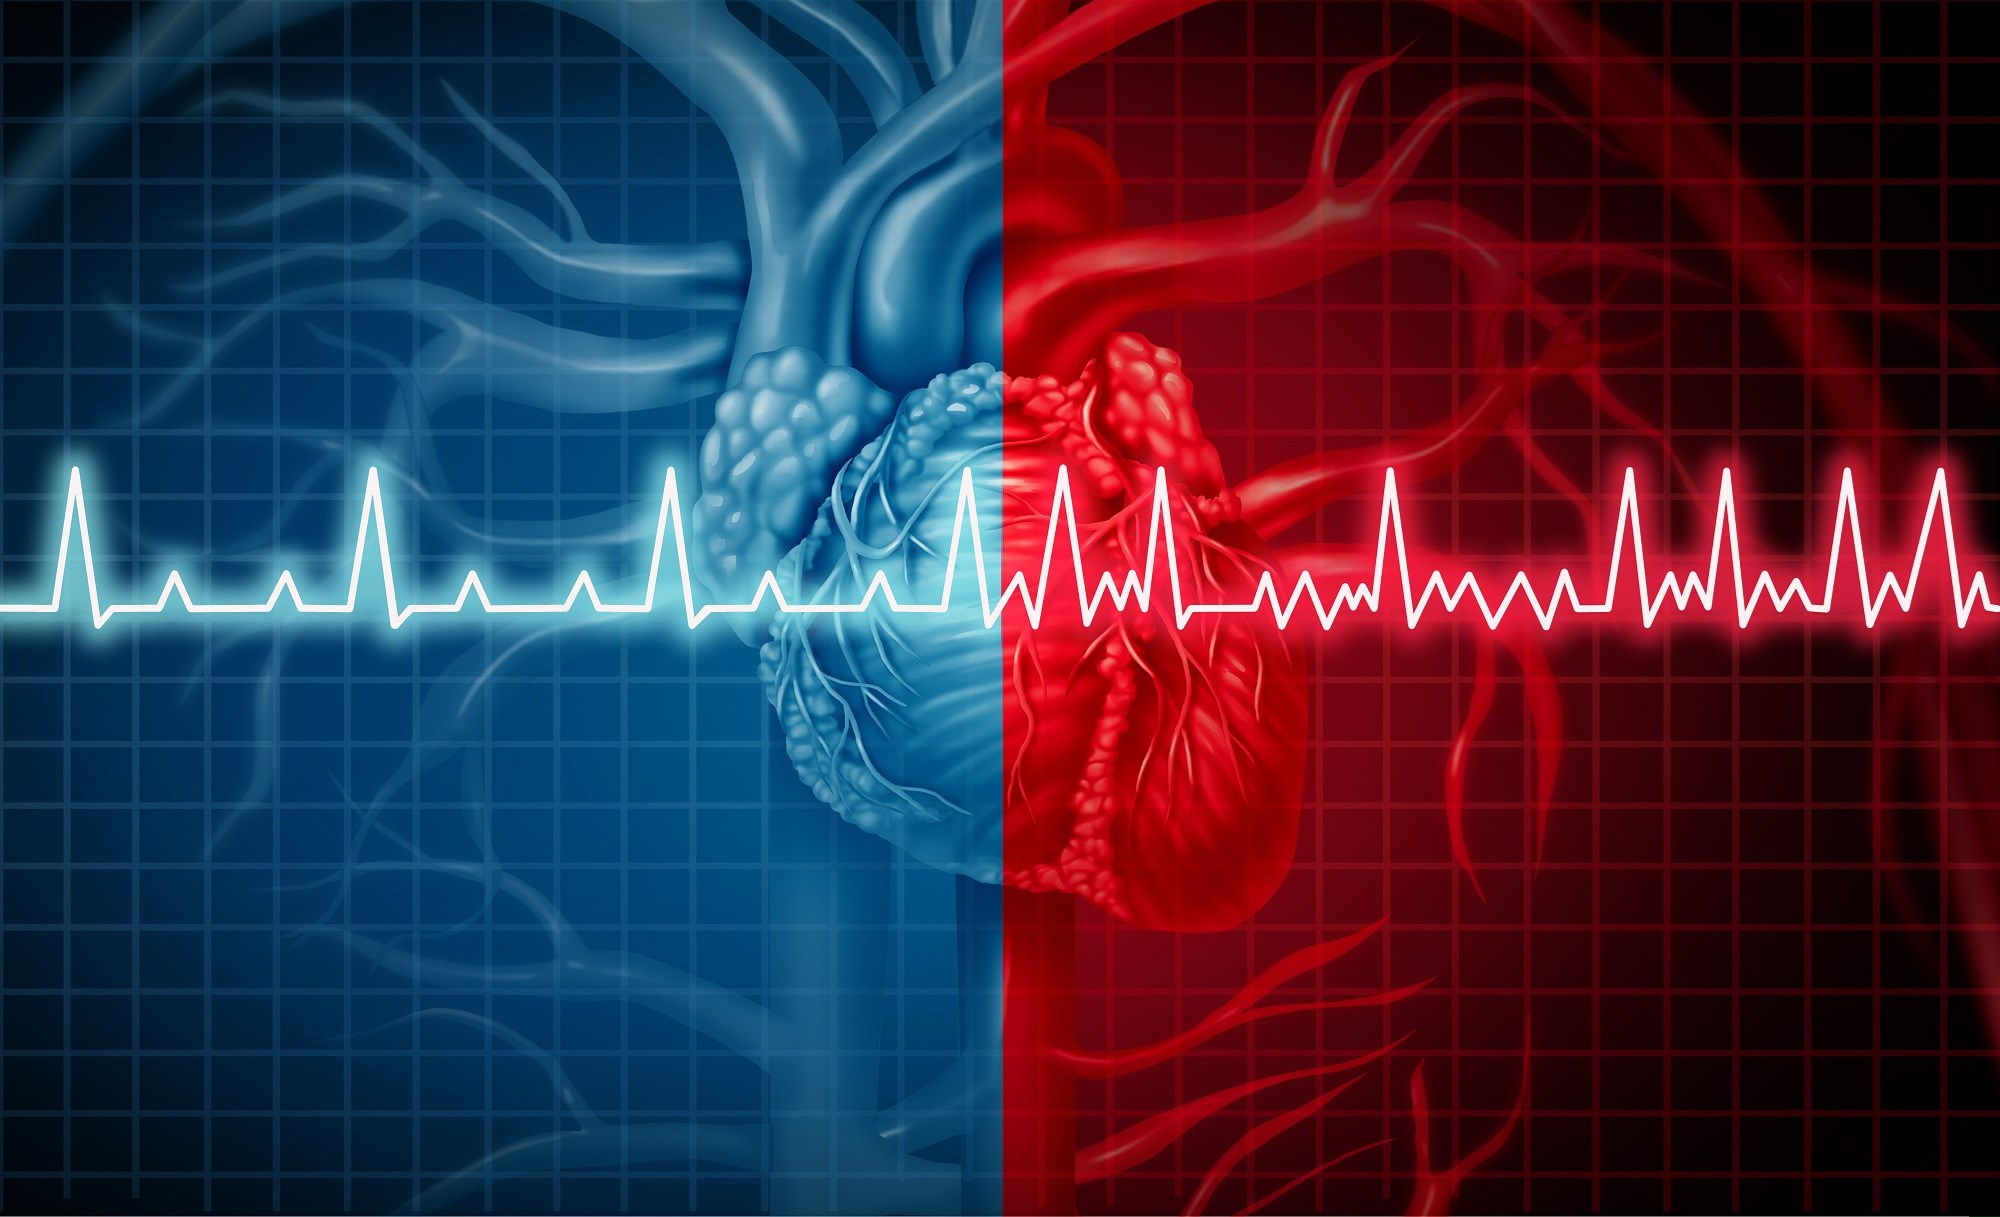 Atrial Fibrillation Risk Increased With Antidepressant Use